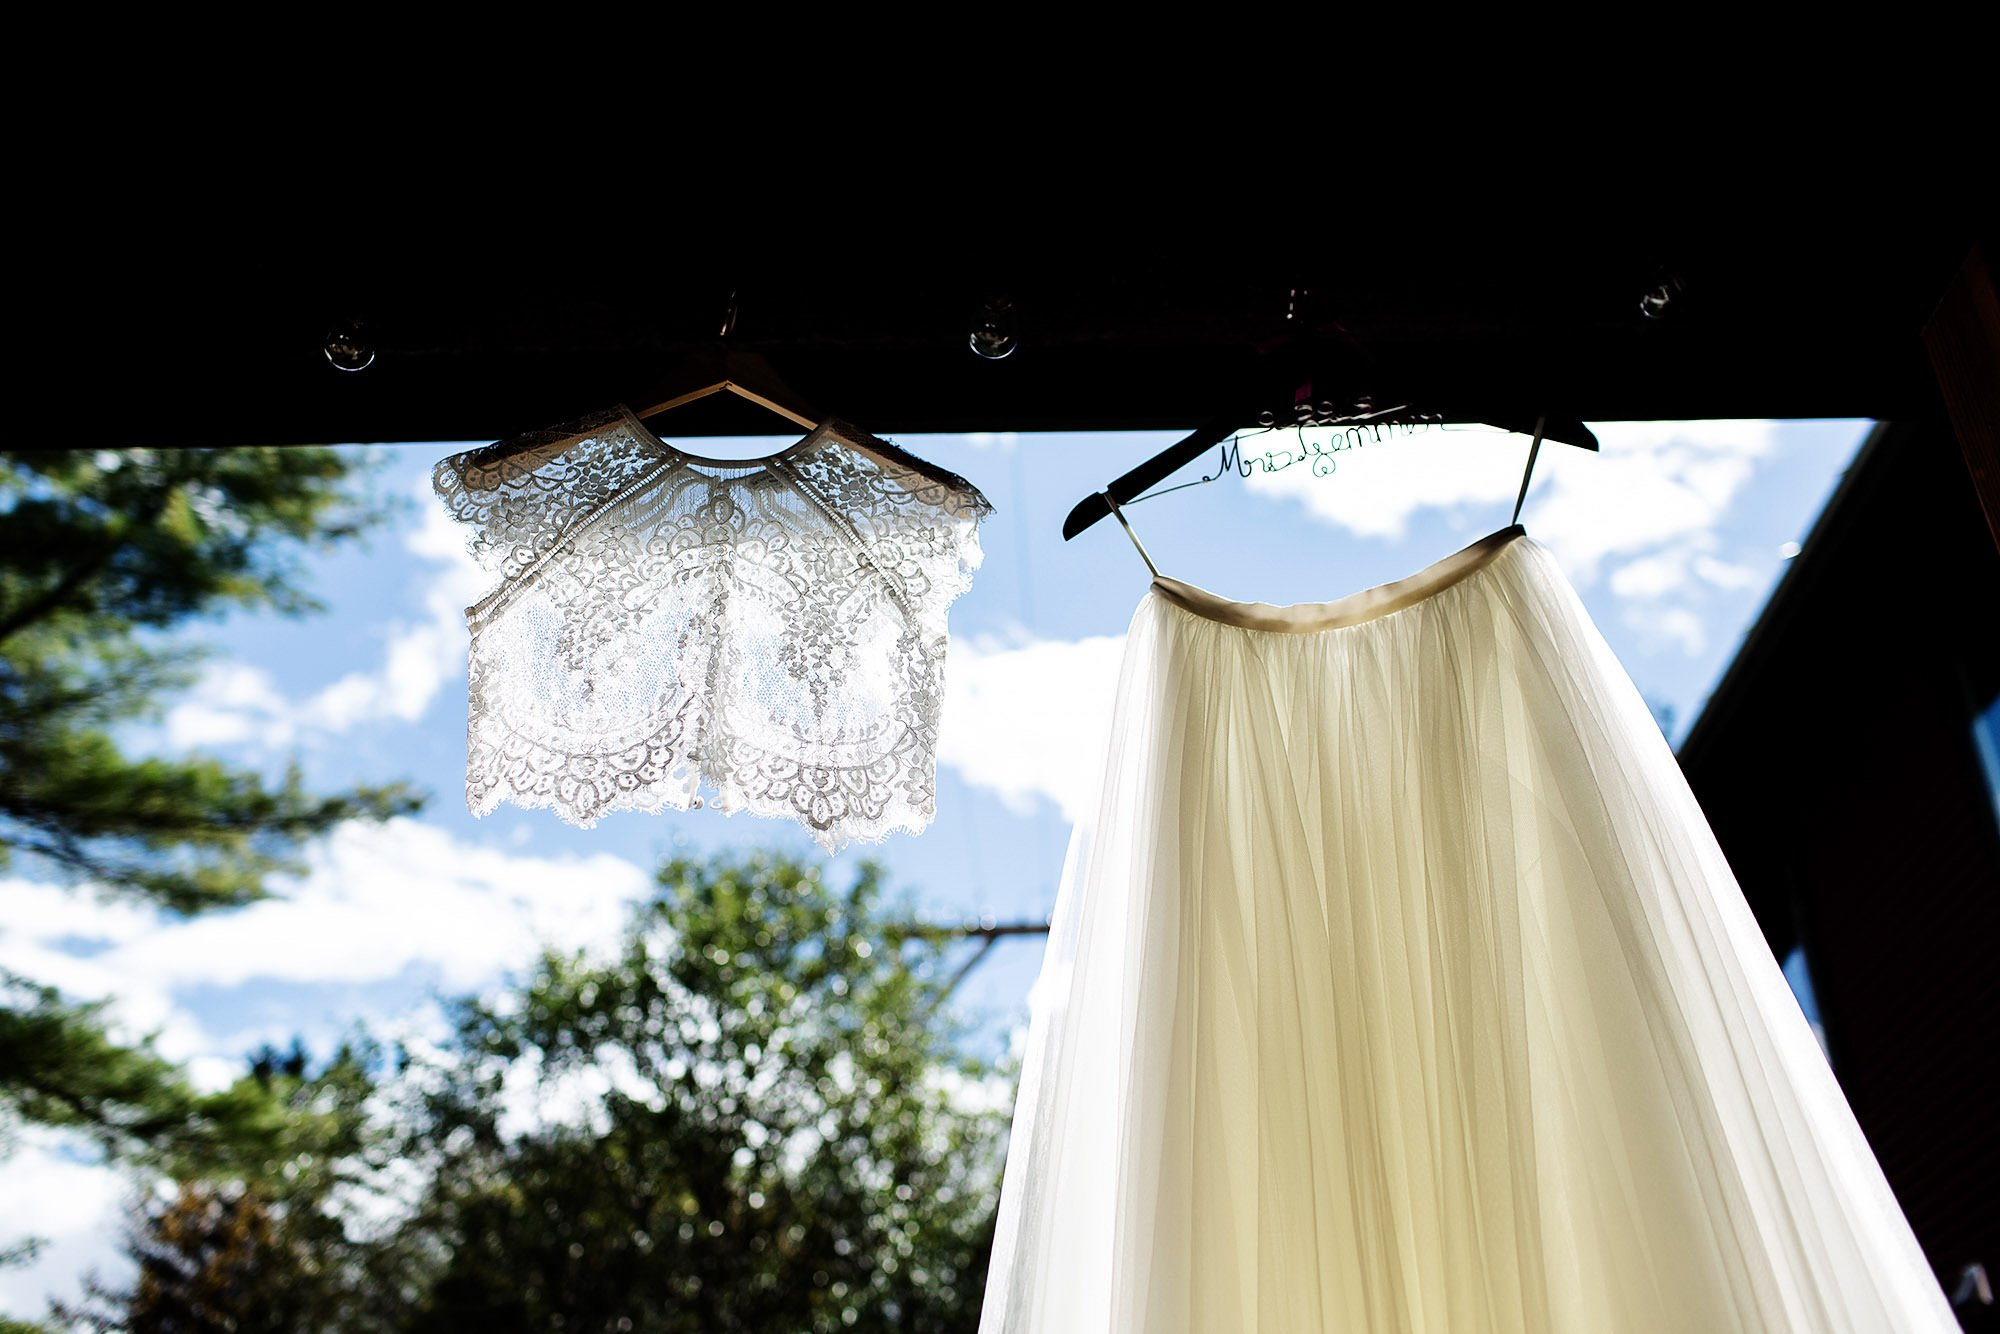 A detail of the bride's dress at Mad River Barn.